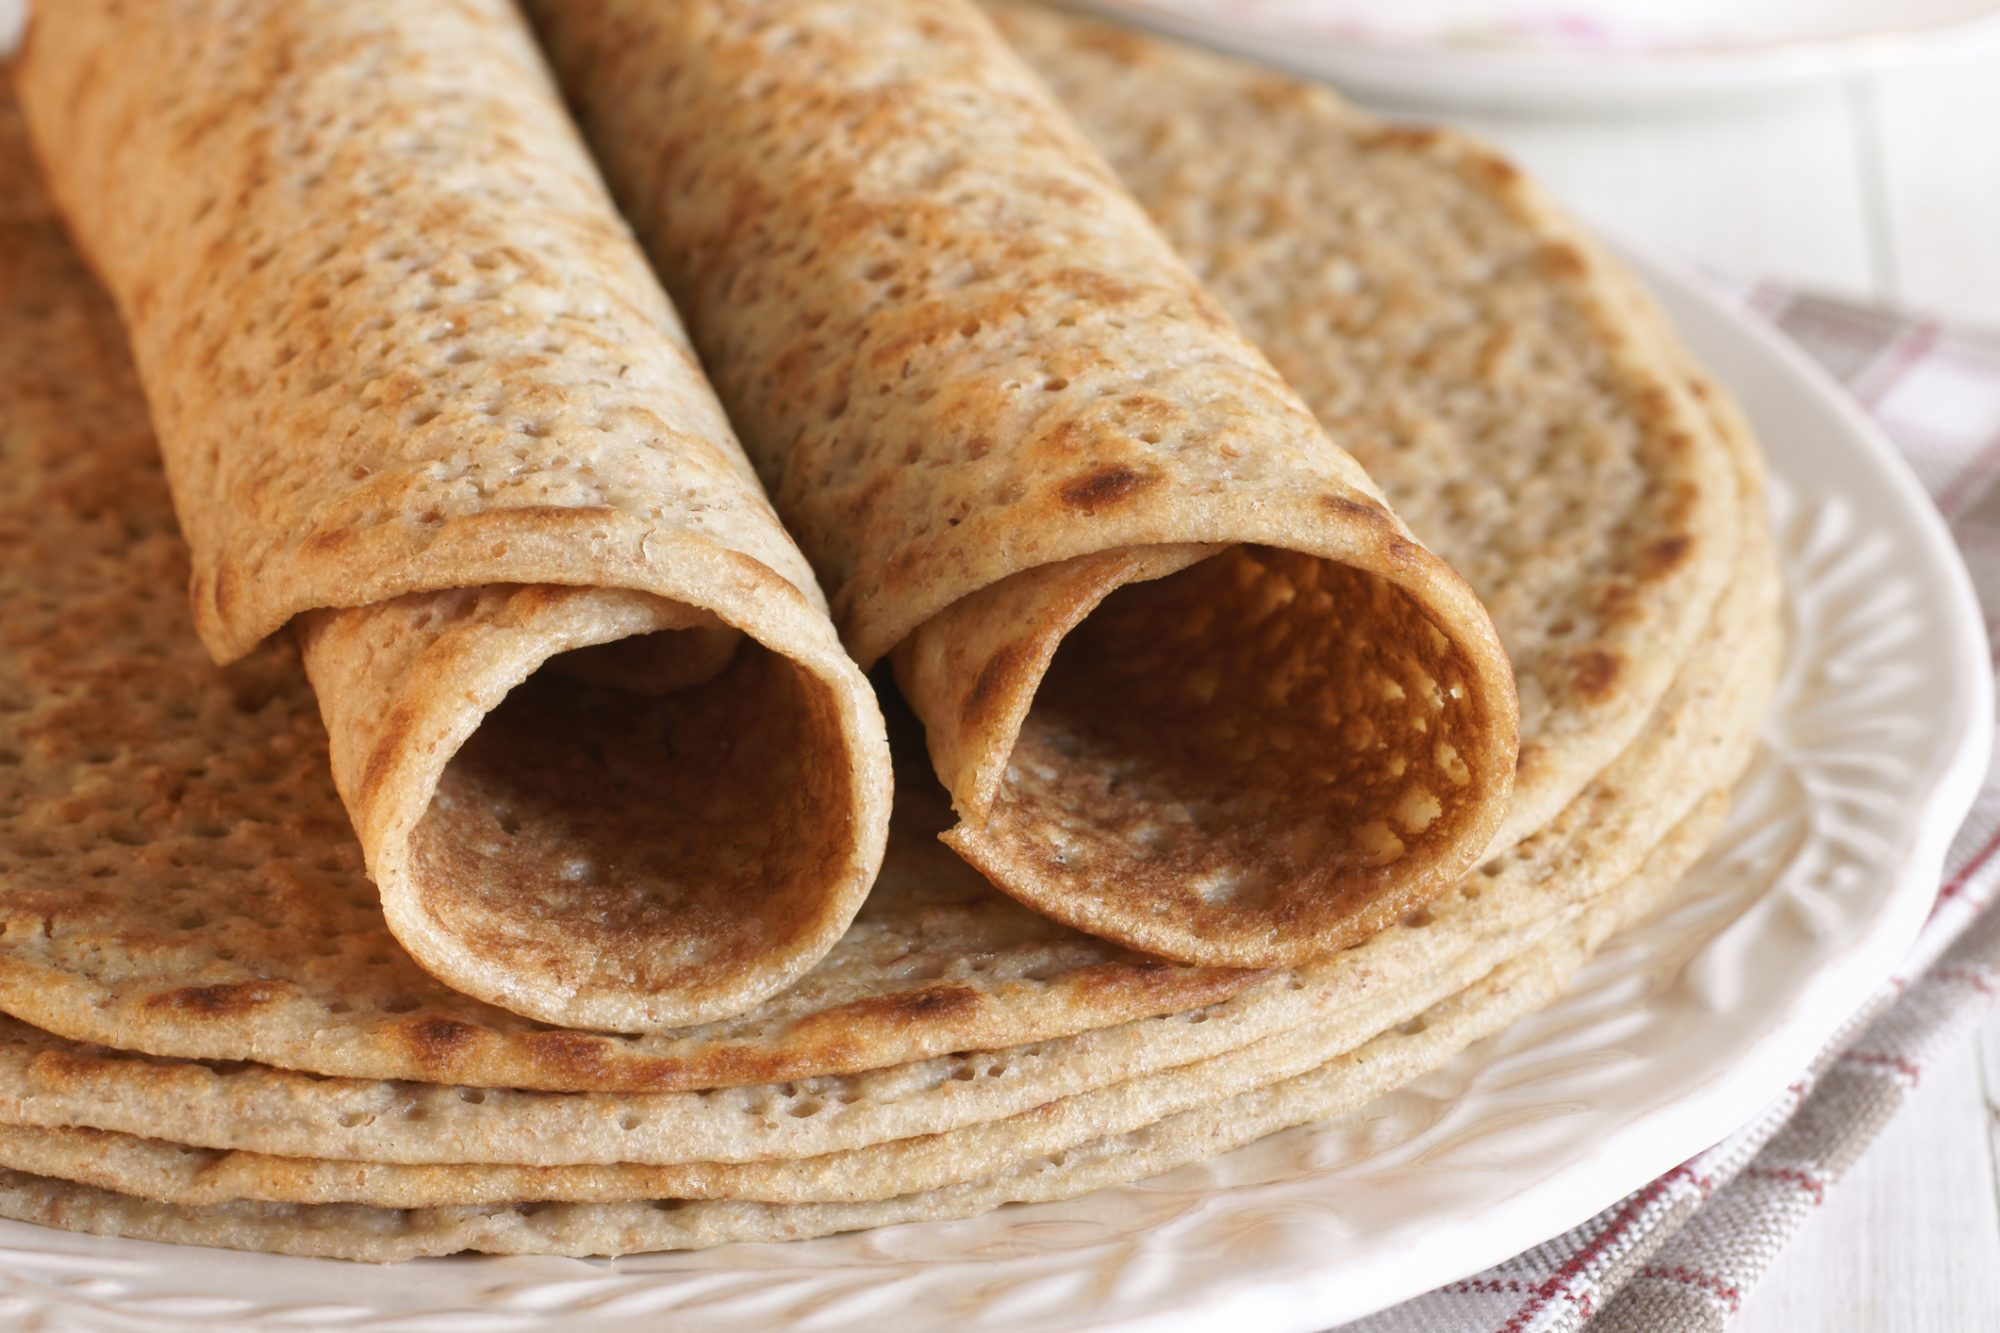 EC: Staffordshire Oatcakes Are the Perfect Food England Doesn't Want You to Know About